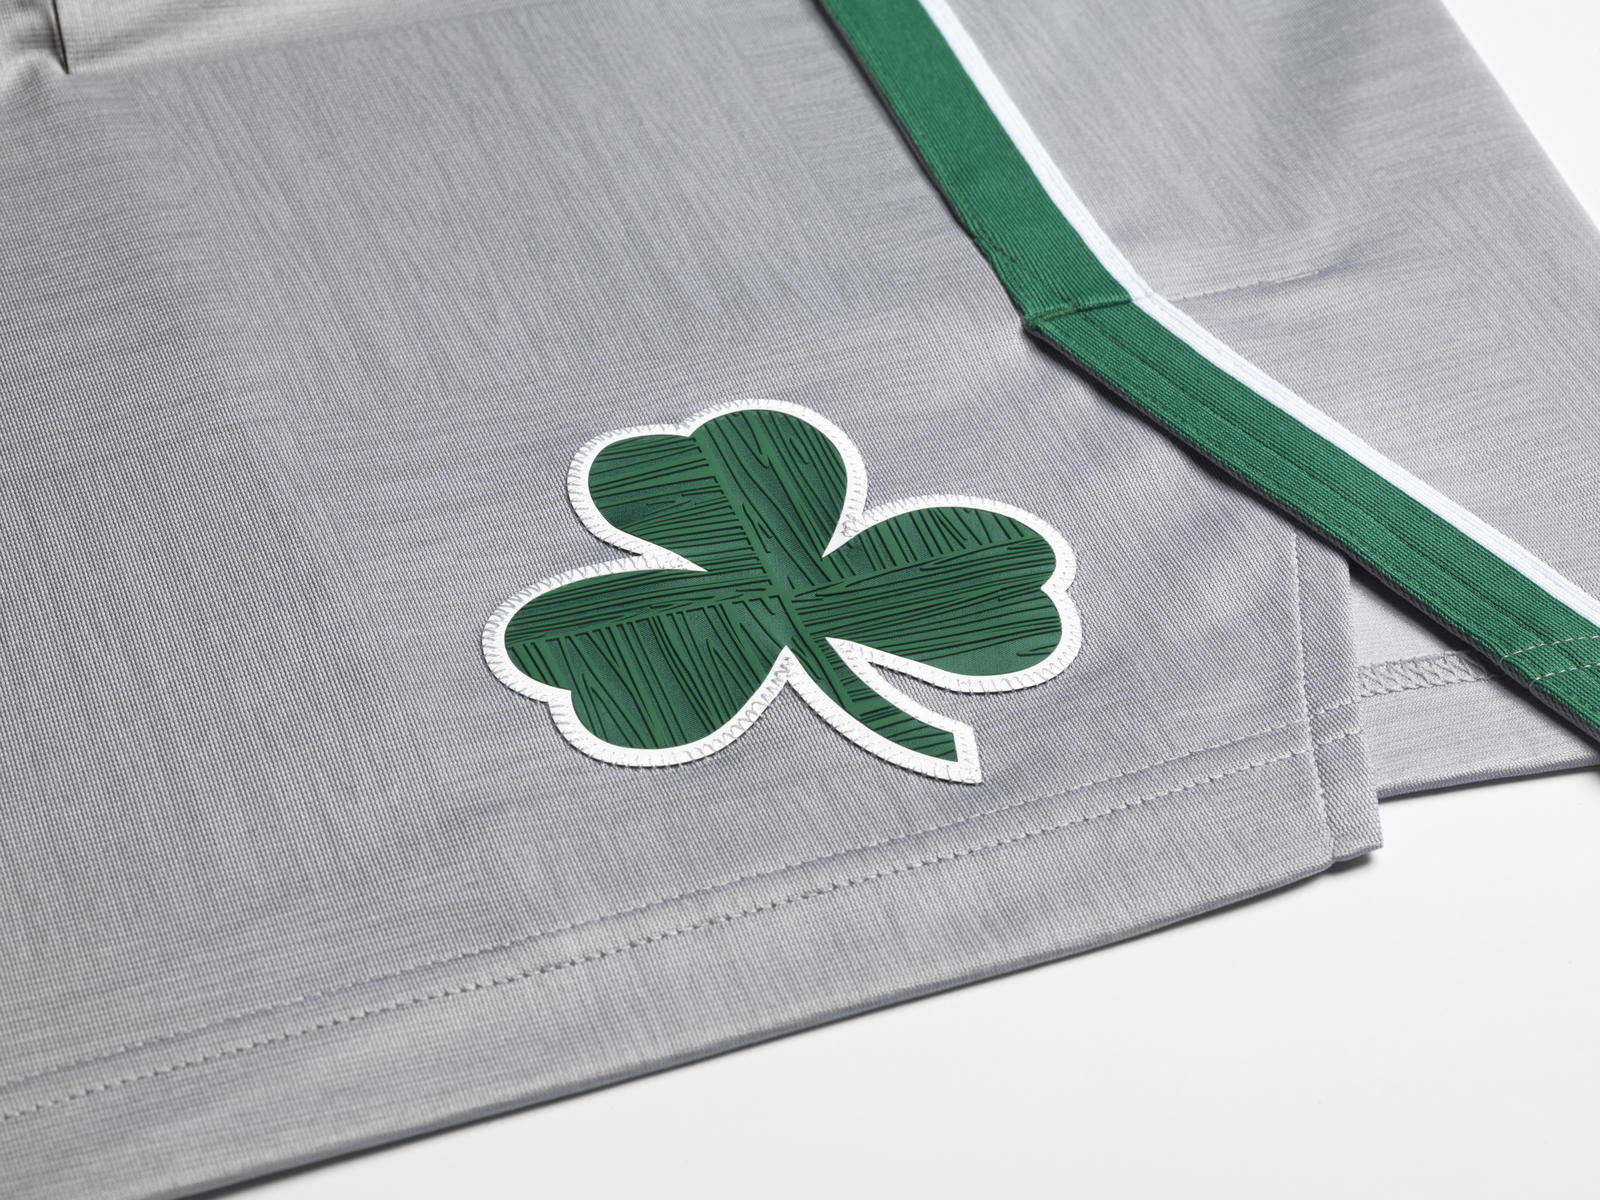 f81d8d76d86 The Celtics City Edition uniform pays tribute to this unique hardwood floor  and the man credited with starting the dynasty